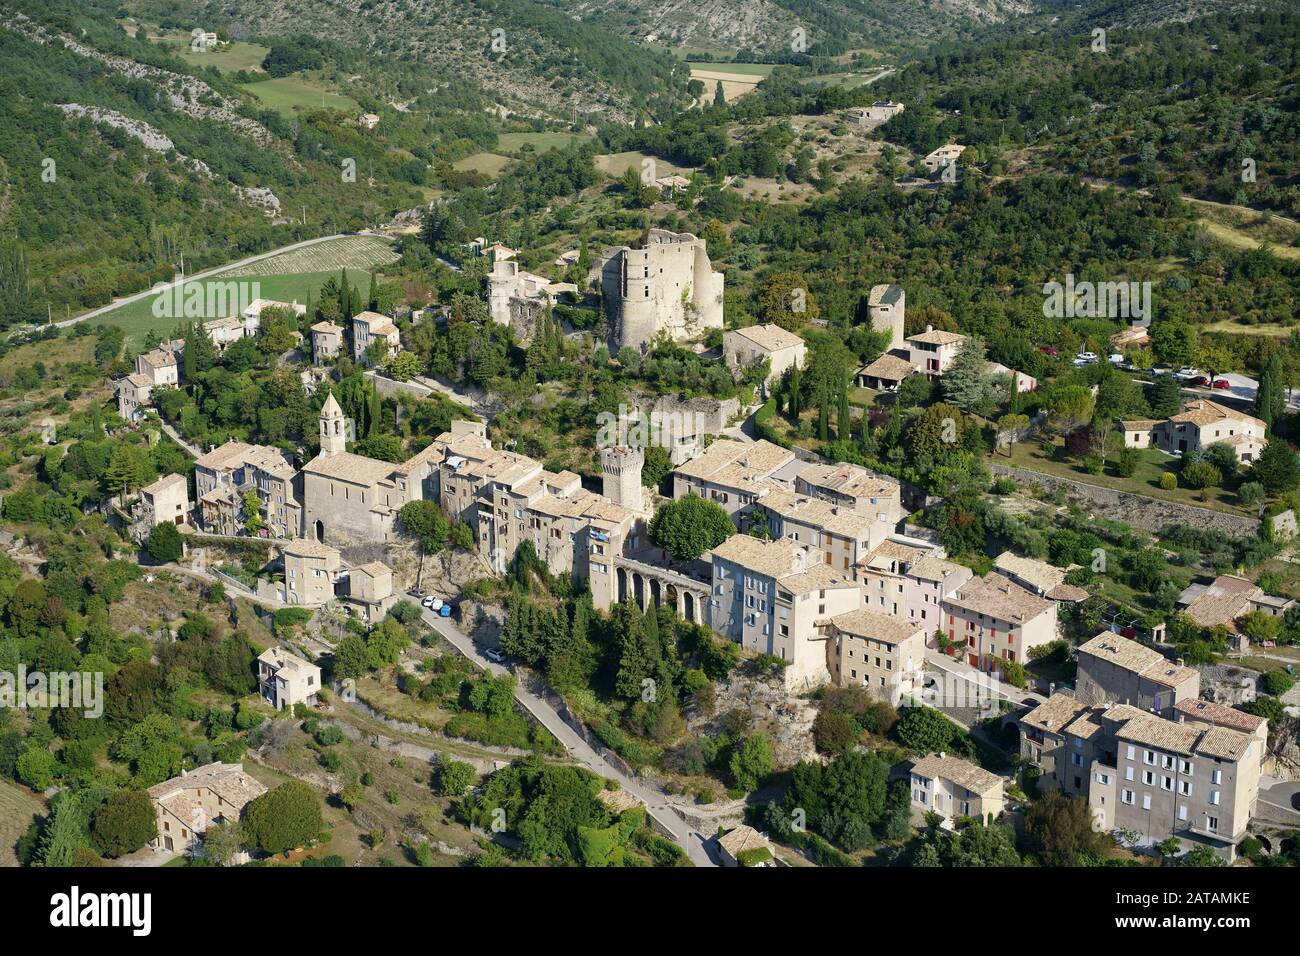 PROVENCAL VILLAGE BUILT ON A HILL, CROWNED WITH A MEDIEVAL CASTLE IN RUINS (aerial view). Montbrun-les-Bains, Drome, France. Stock Photo